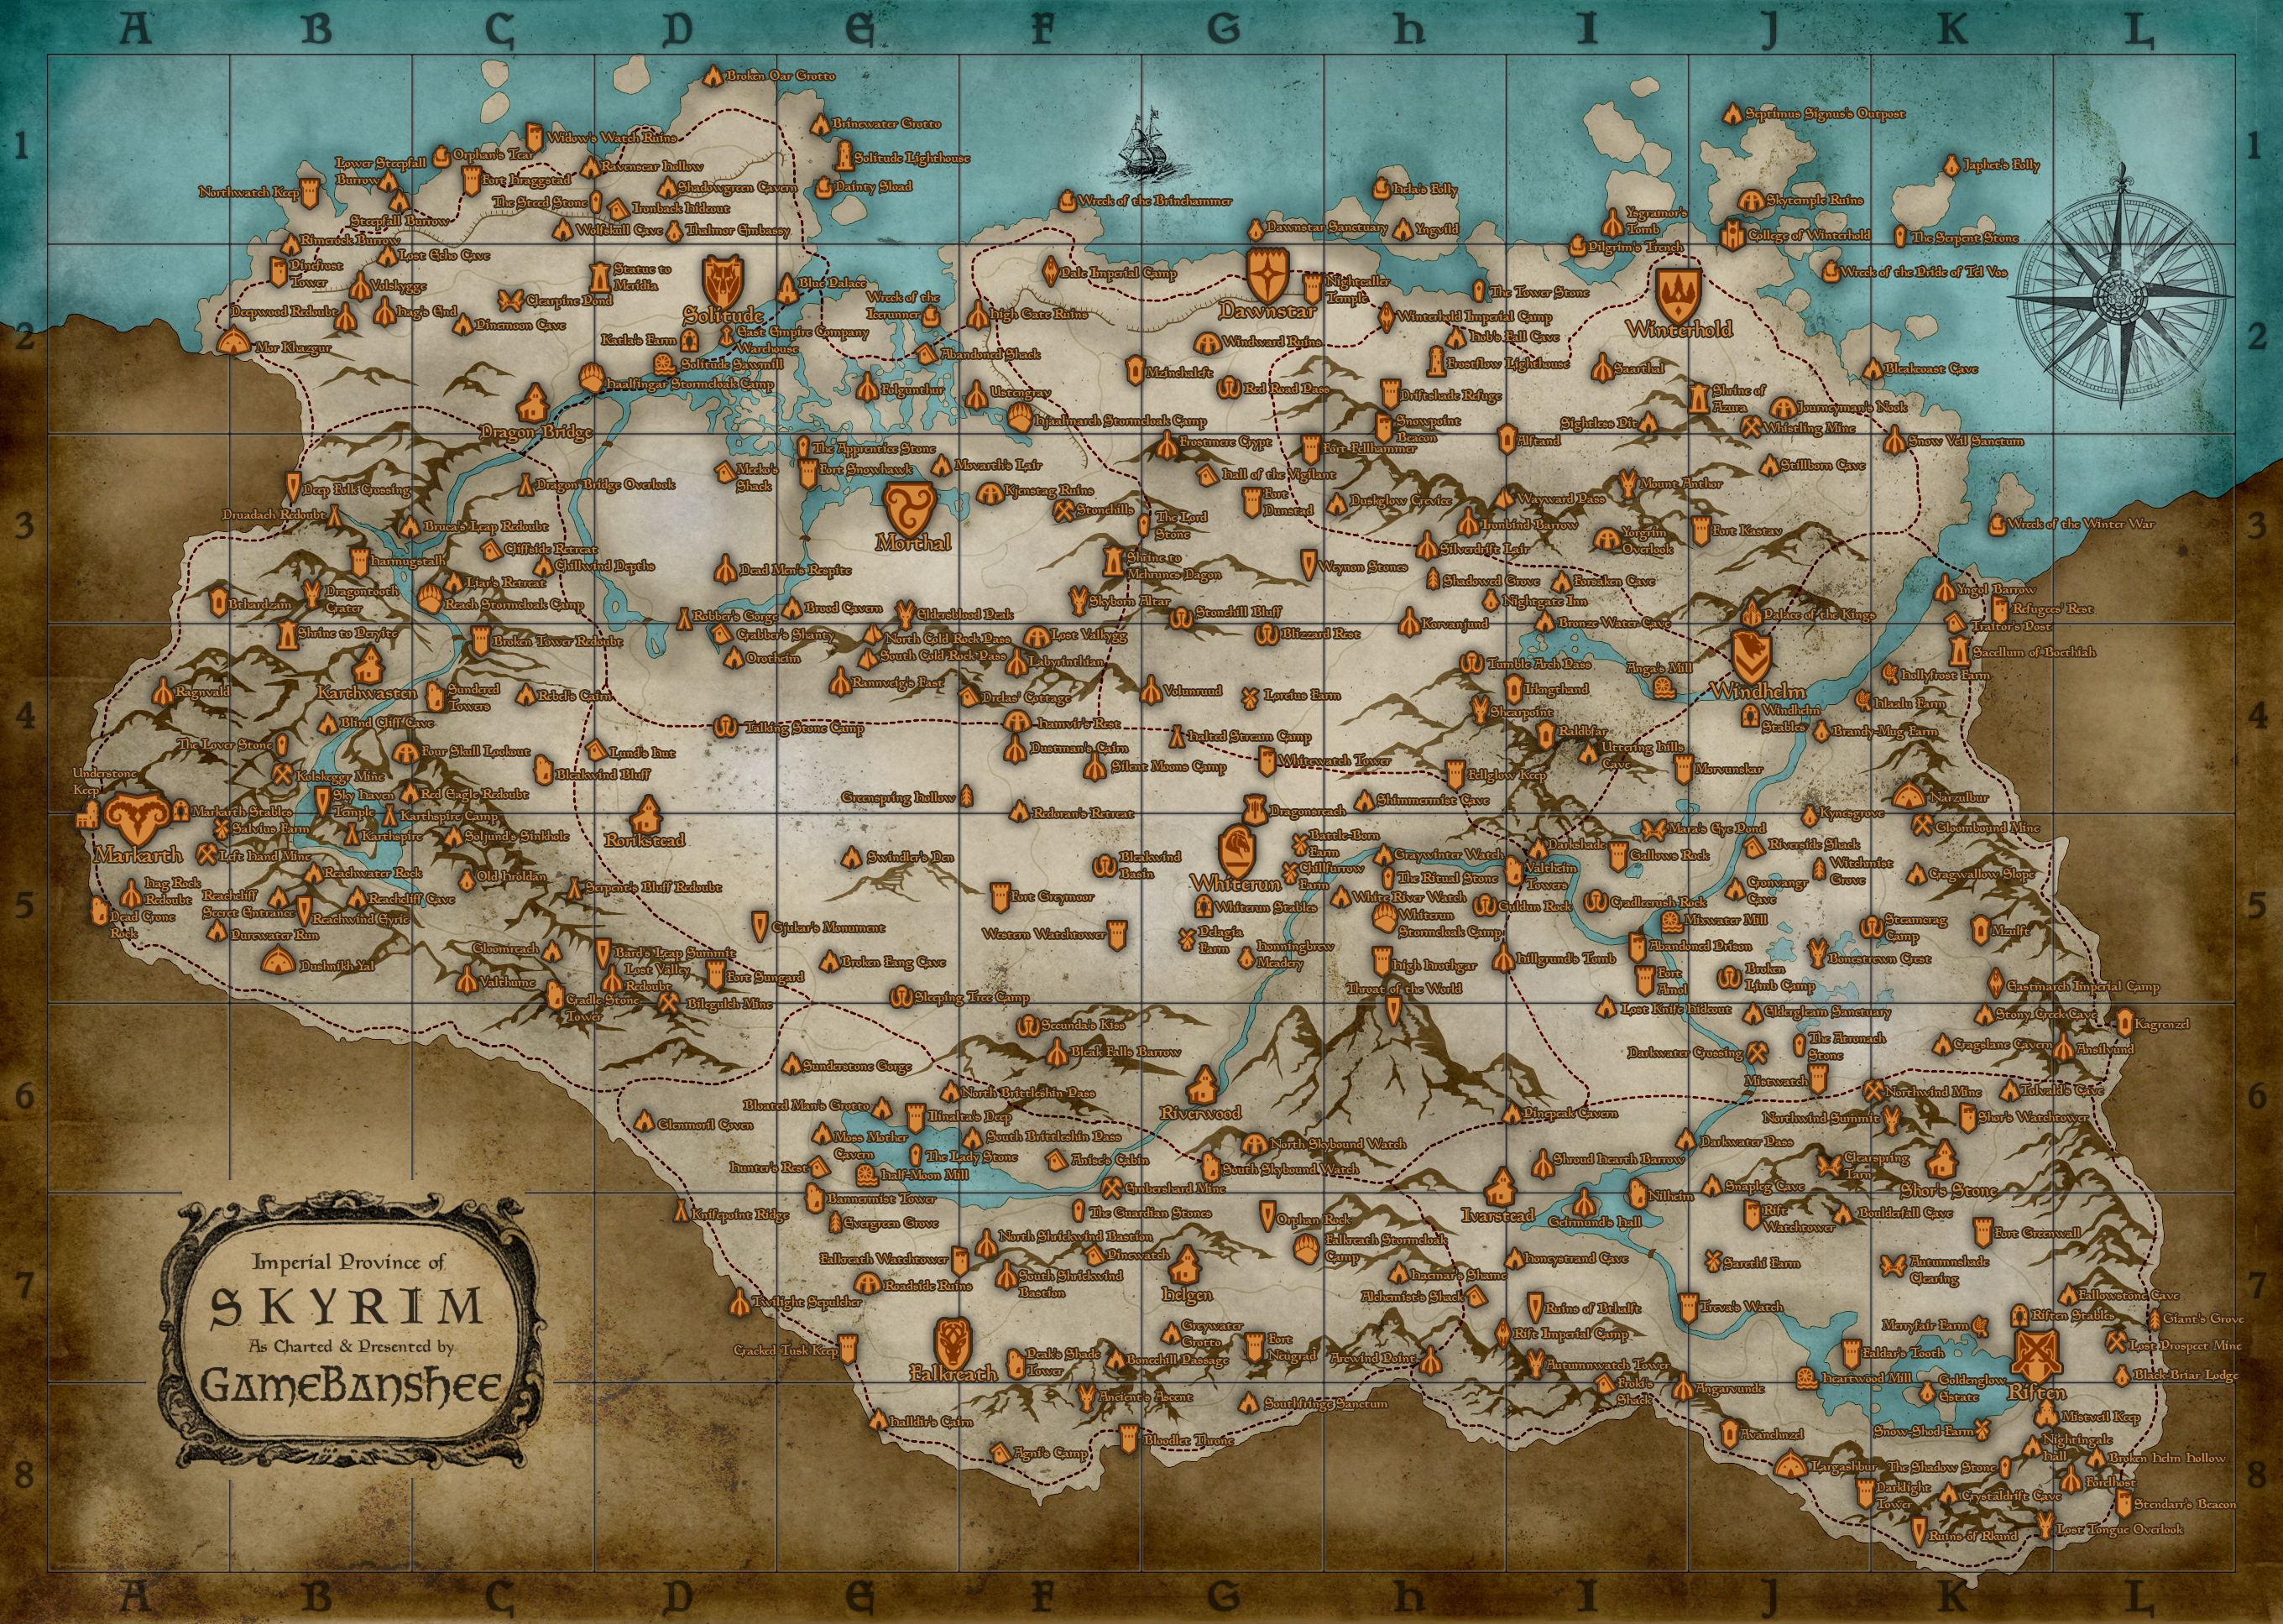 Need an elder scrolls v skyrim fully printable pdf world map poster skyrimmapsmallskyrimmapelder scrolls velder scrolls2011world mapposterworldgame gumiabroncs Image collections